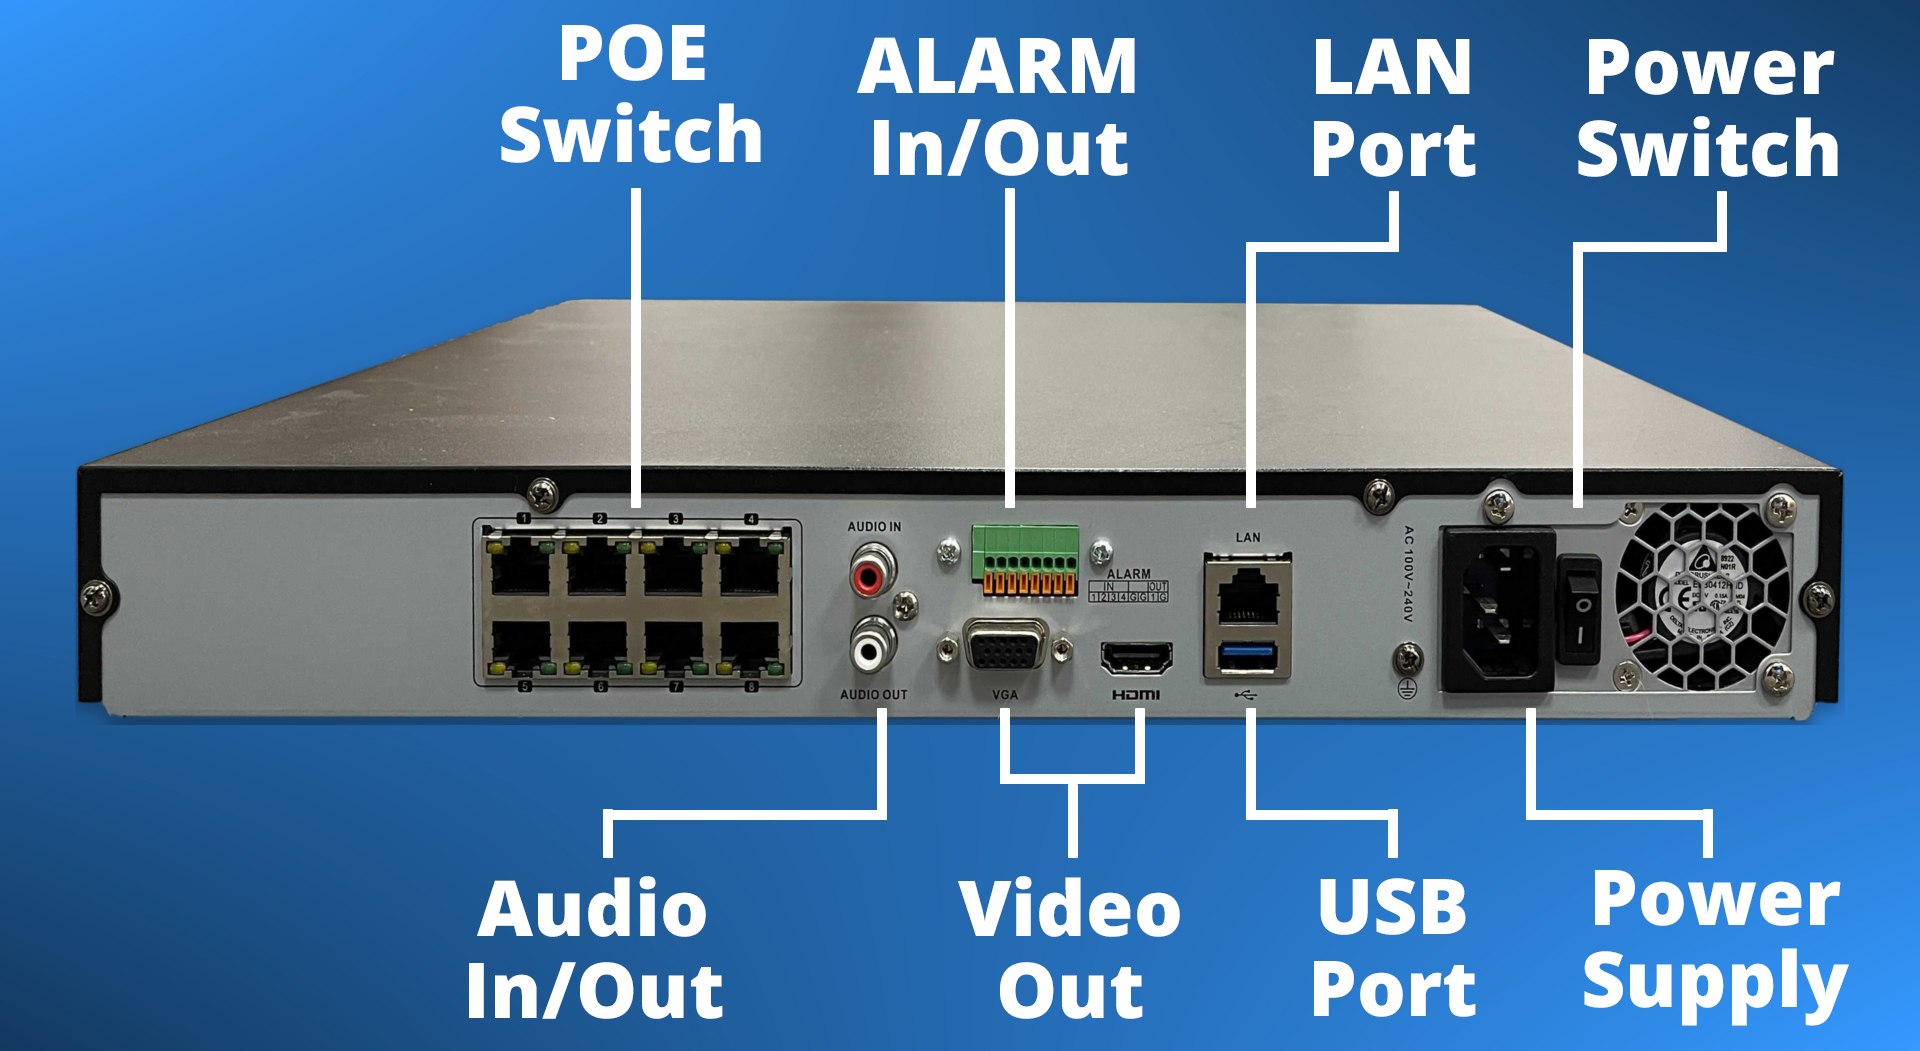 A diagram of the back of an NVR.